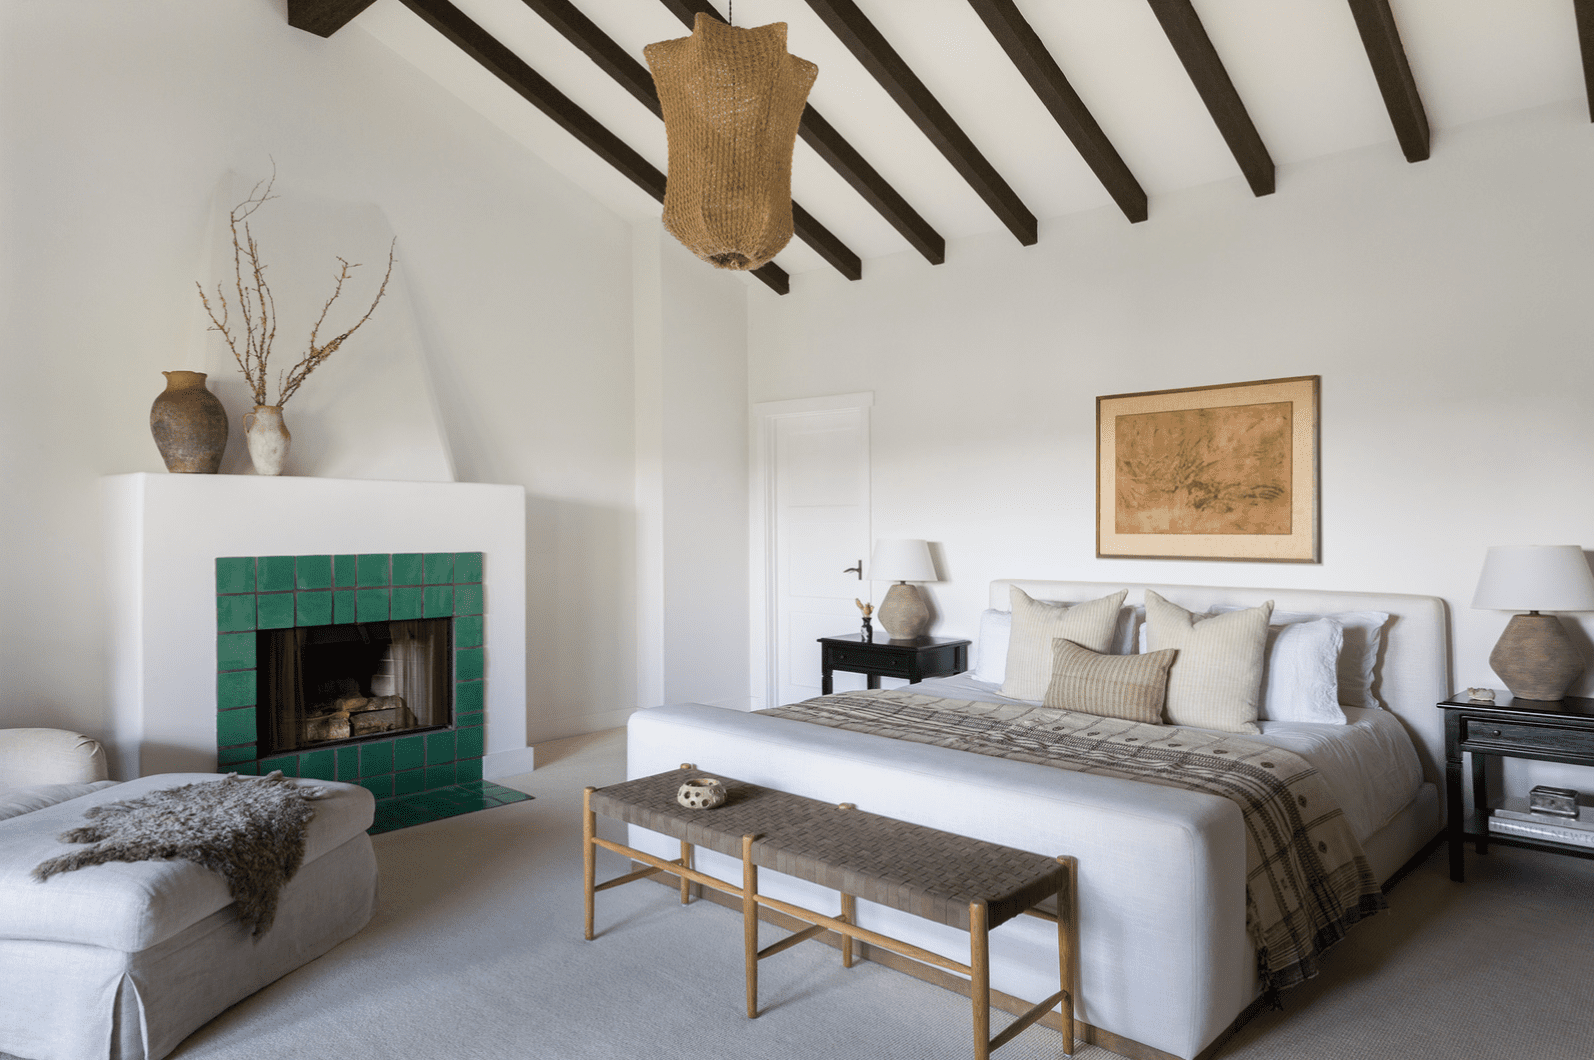 A bedroom with rustic accents